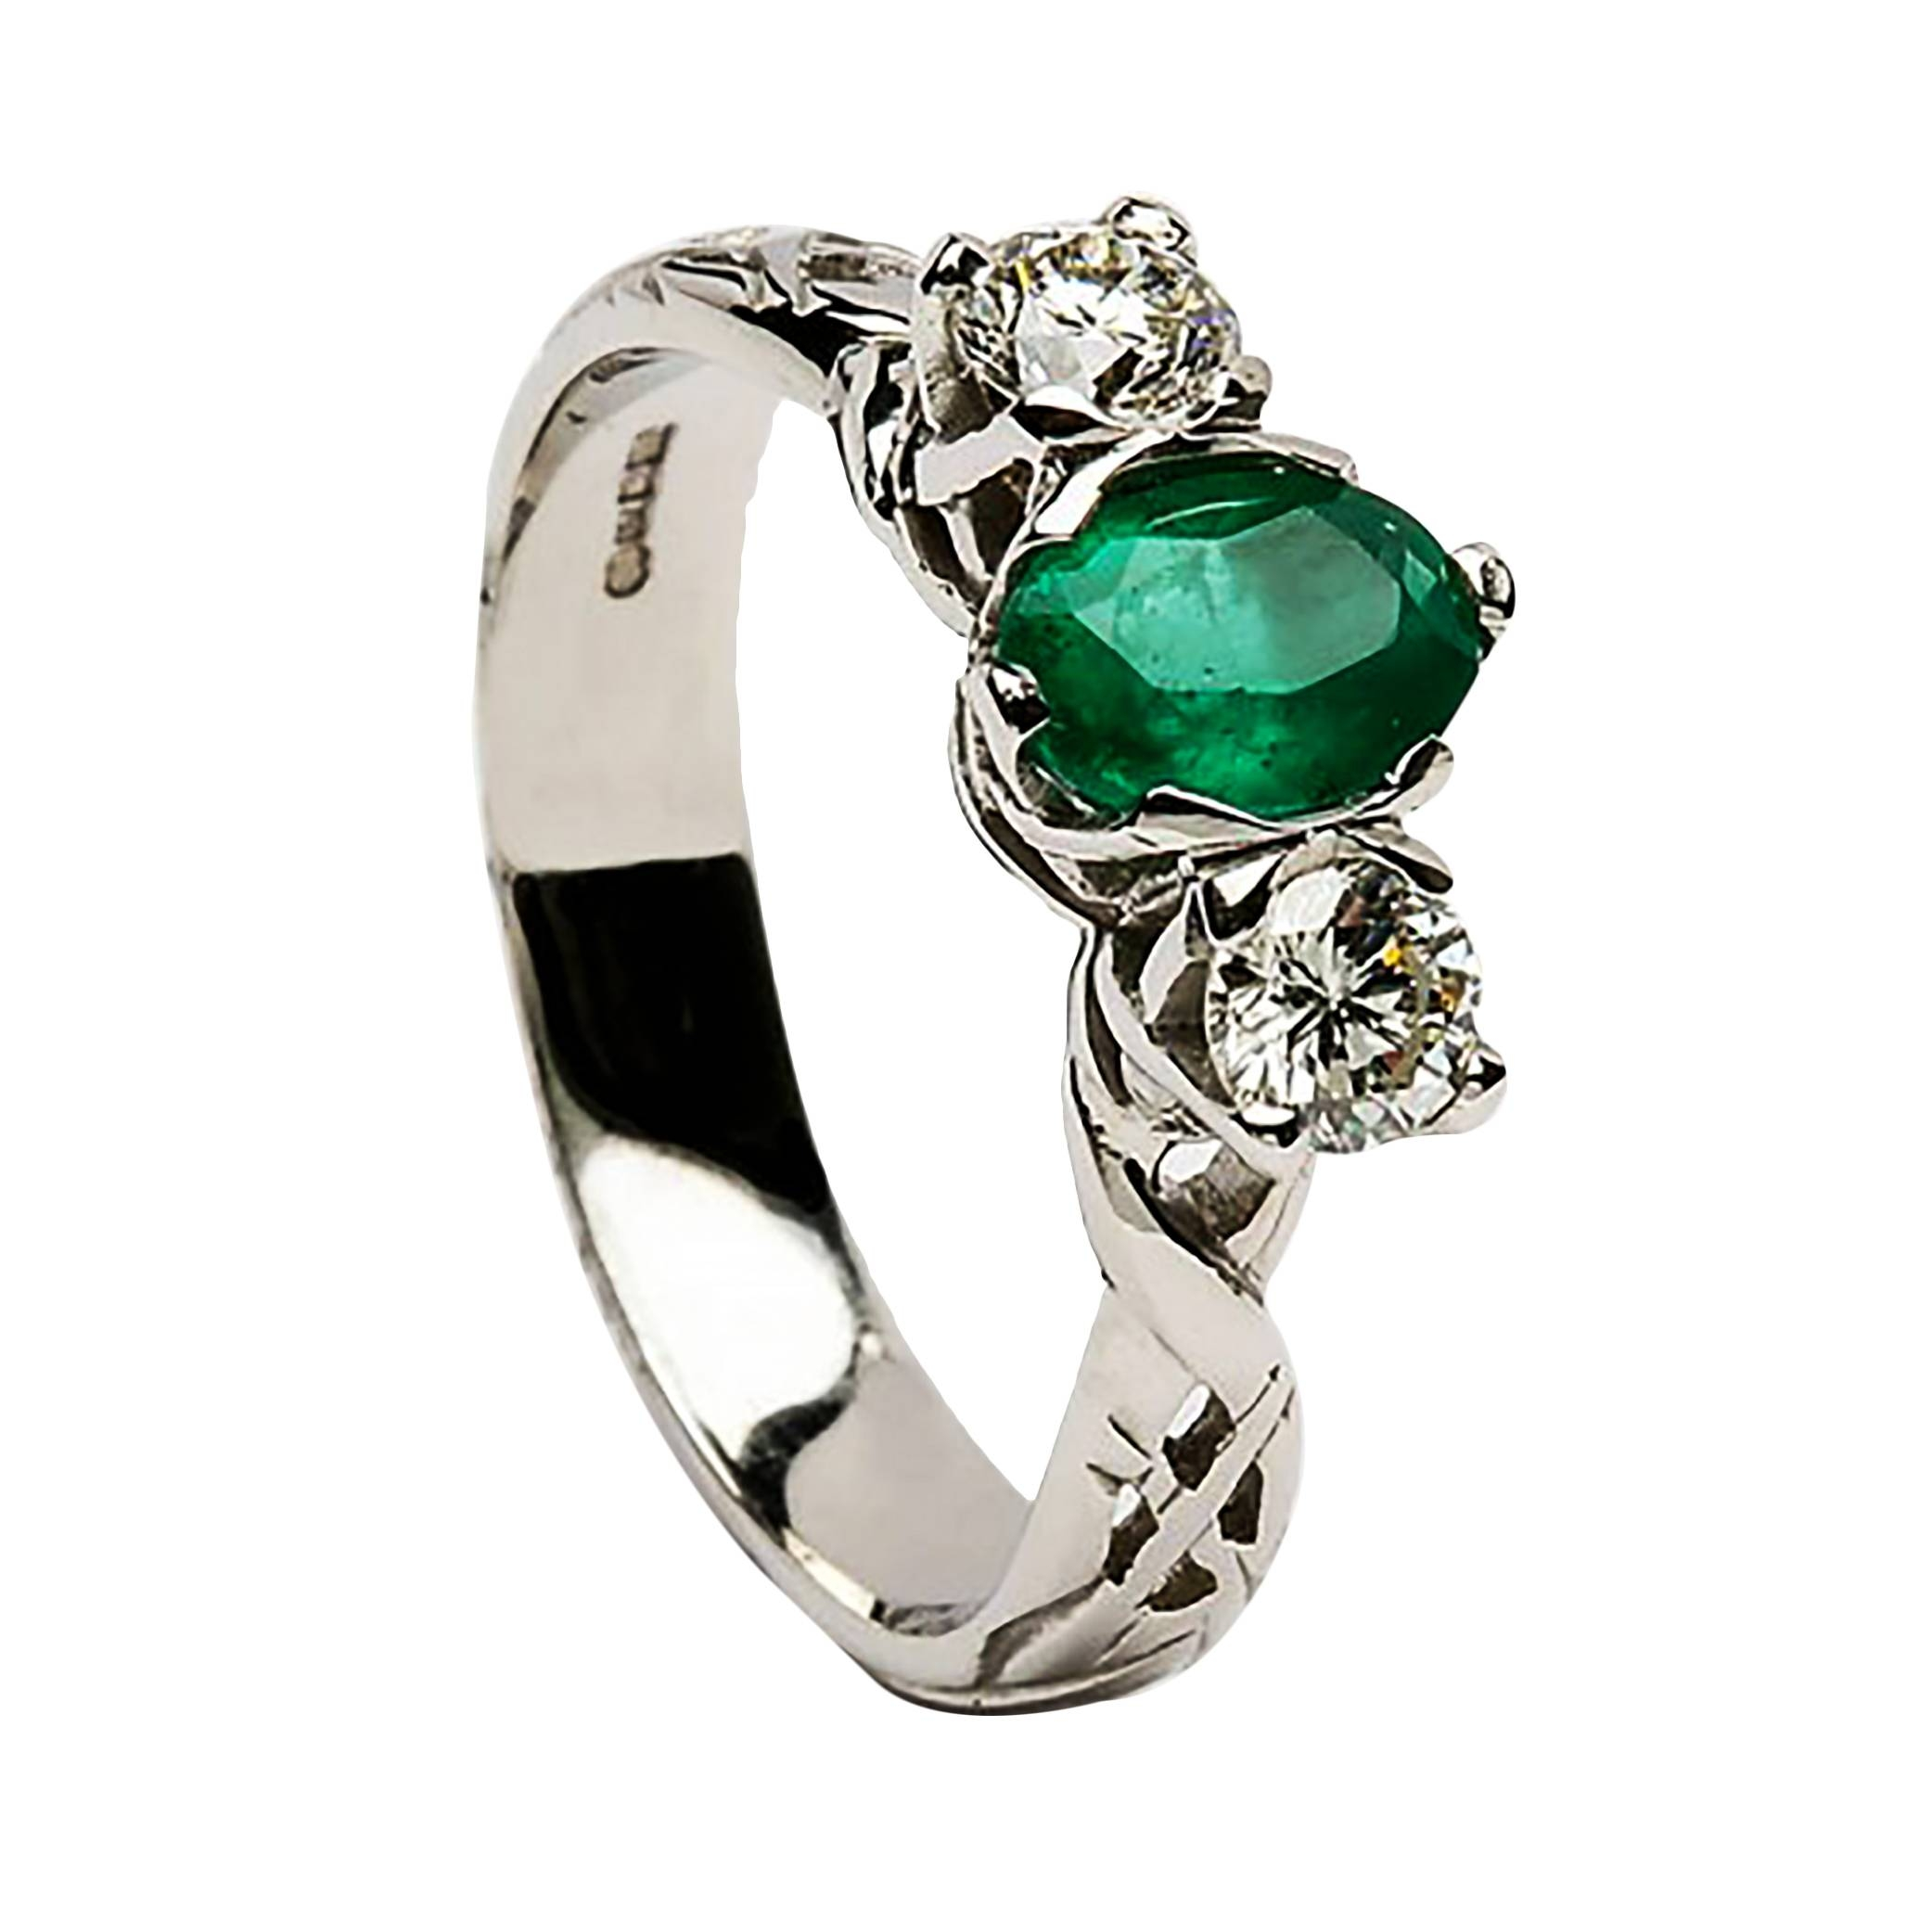 Irish Celtic Engagement Rings | Diamond Rings | Silver Rings Intended For Irish Diamond Engagement Rings (View 14 of 15)